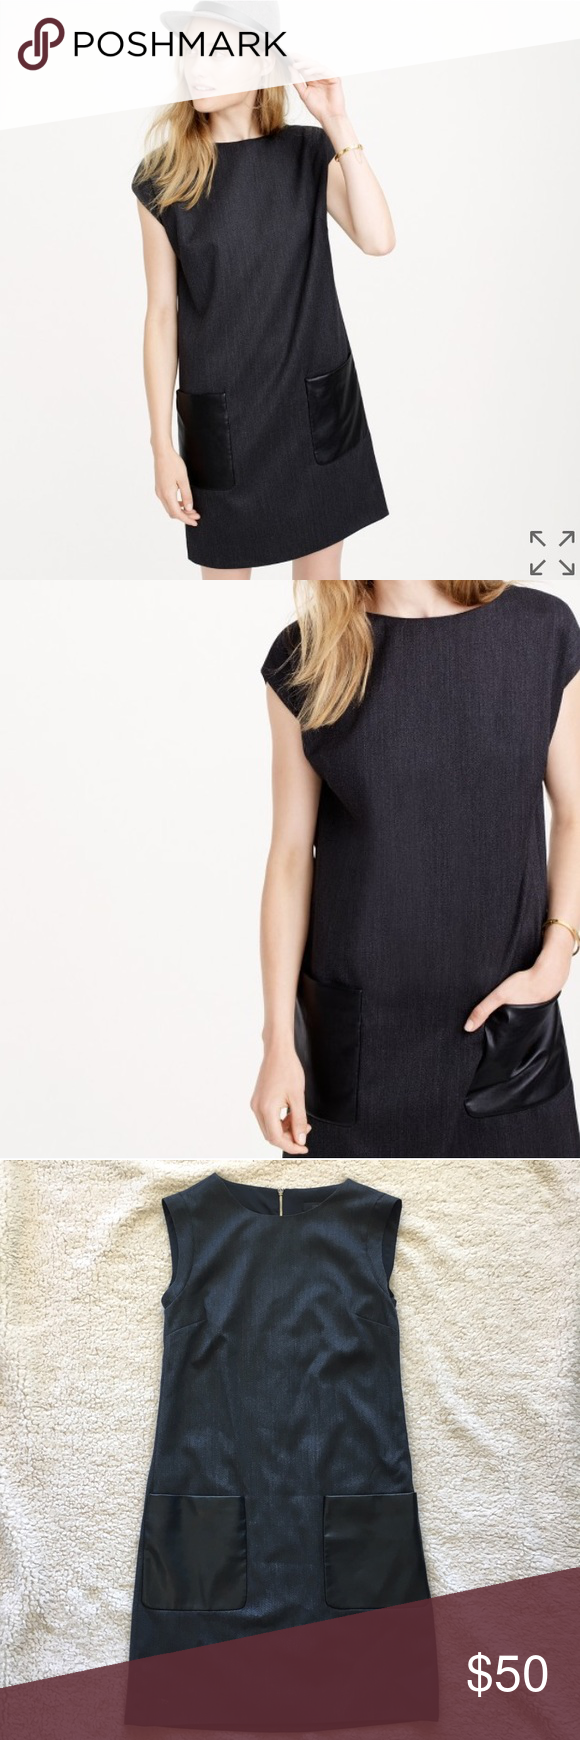 J. Crew Sheath Dress with Faux-Leather Pockets, 00 J. Crew Faux Leather Pocket Sheath Dress in a gray wool-blend with back zipper. Classic dress that transitions beautifully between seasons. Good used condition from a smoke-free, pet-free home. Size: 00 J. Crew Dresses